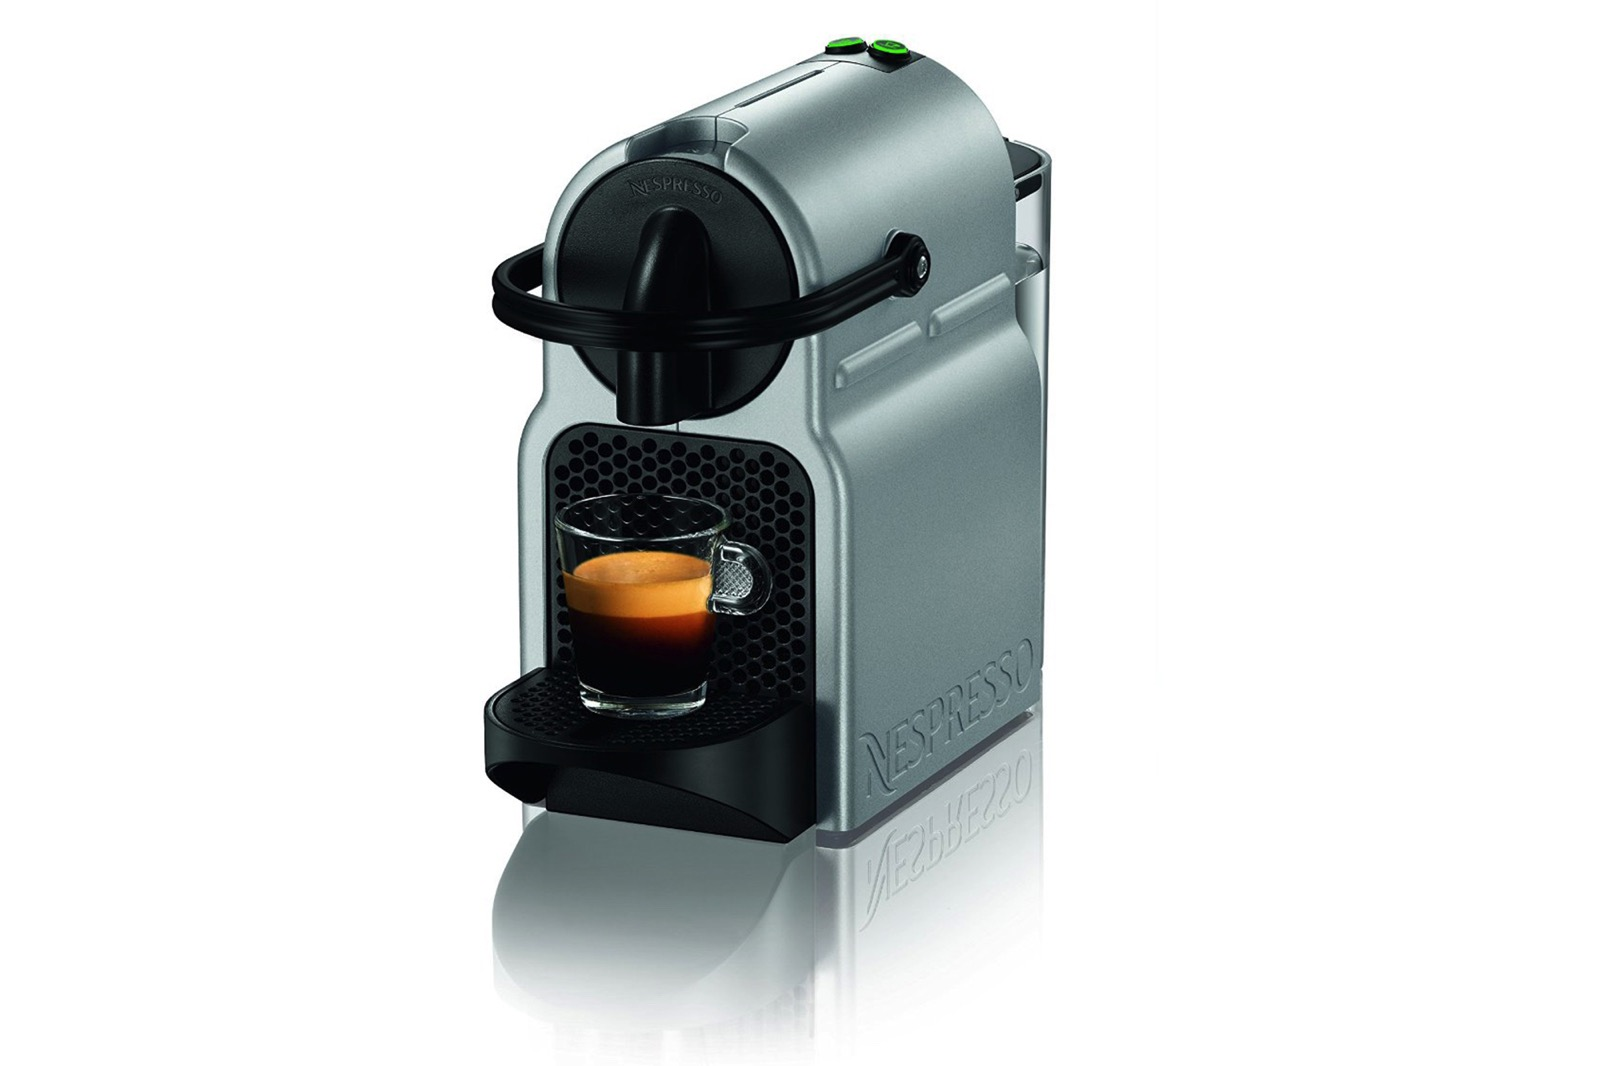 Best Coffee Maker Wirecutter : The Wirecutter s best deals: Save USD 50 on a Nespresso coffee maker